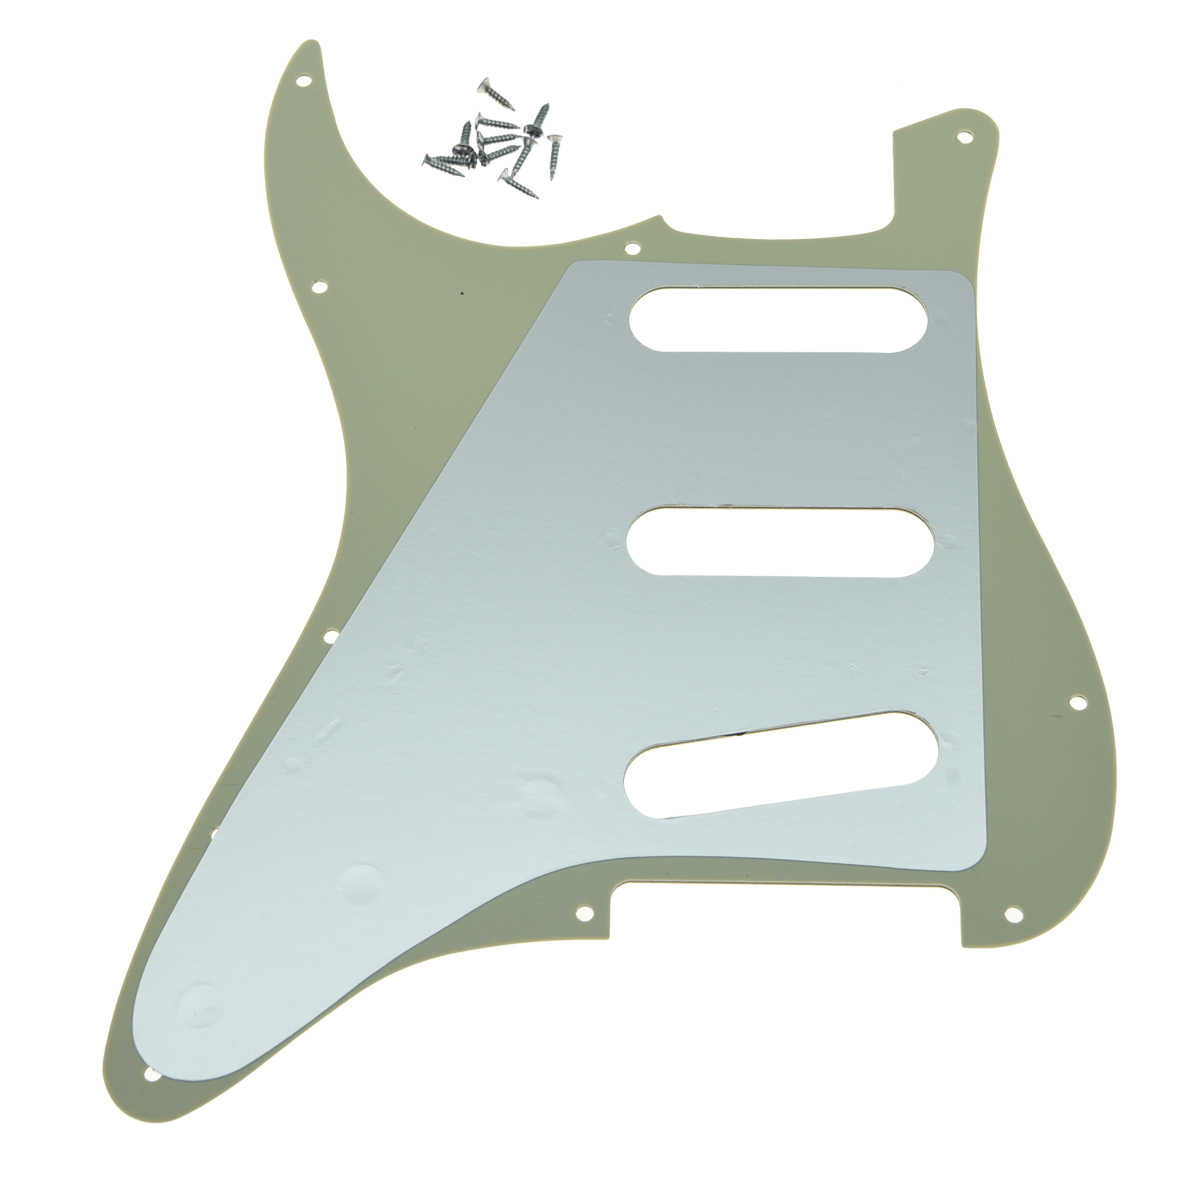 KAISH 11 Hole Strat ST SSS Single Coil Pickups Guitar Pickguard Scratch Plate with Screws for American Fender 62 Stratocaster